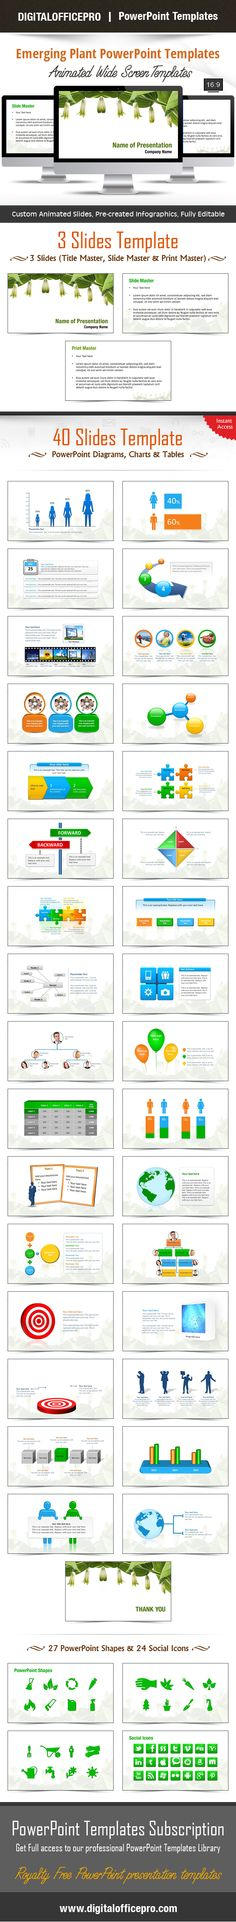 Impress and Engage your audience with Emerging Plant PowerPoint Template and Emerging Plant PowerPoint Backgrounds from DigitalOfficePro. Each template comes with a set of PowerPoint Diagrams, Charts & Shapes and are available for instant download.